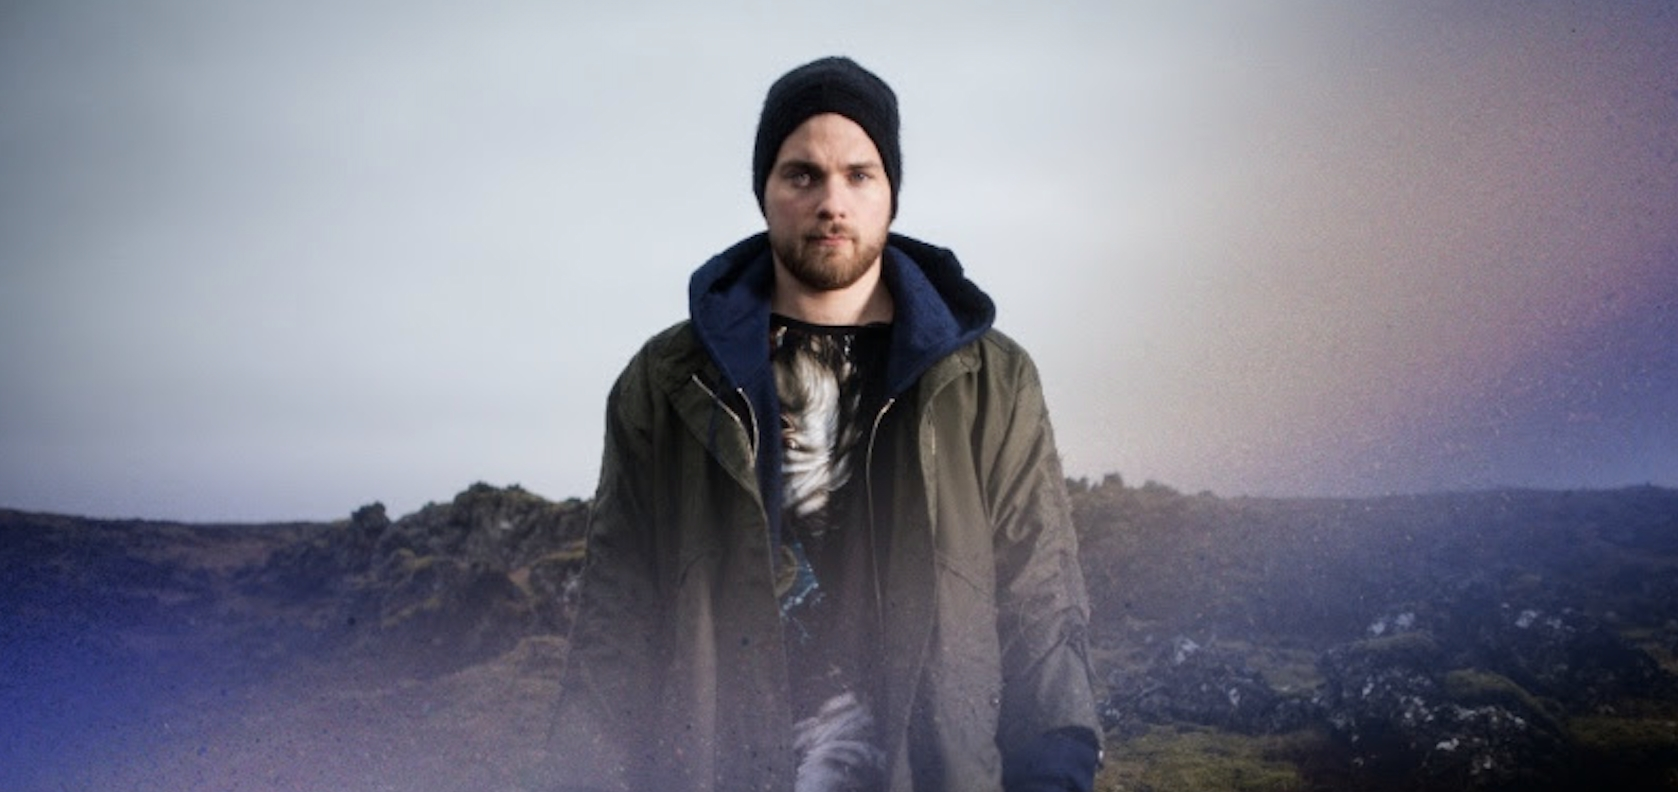 Man standing infront of a hill wearing a green jacket and black beanie